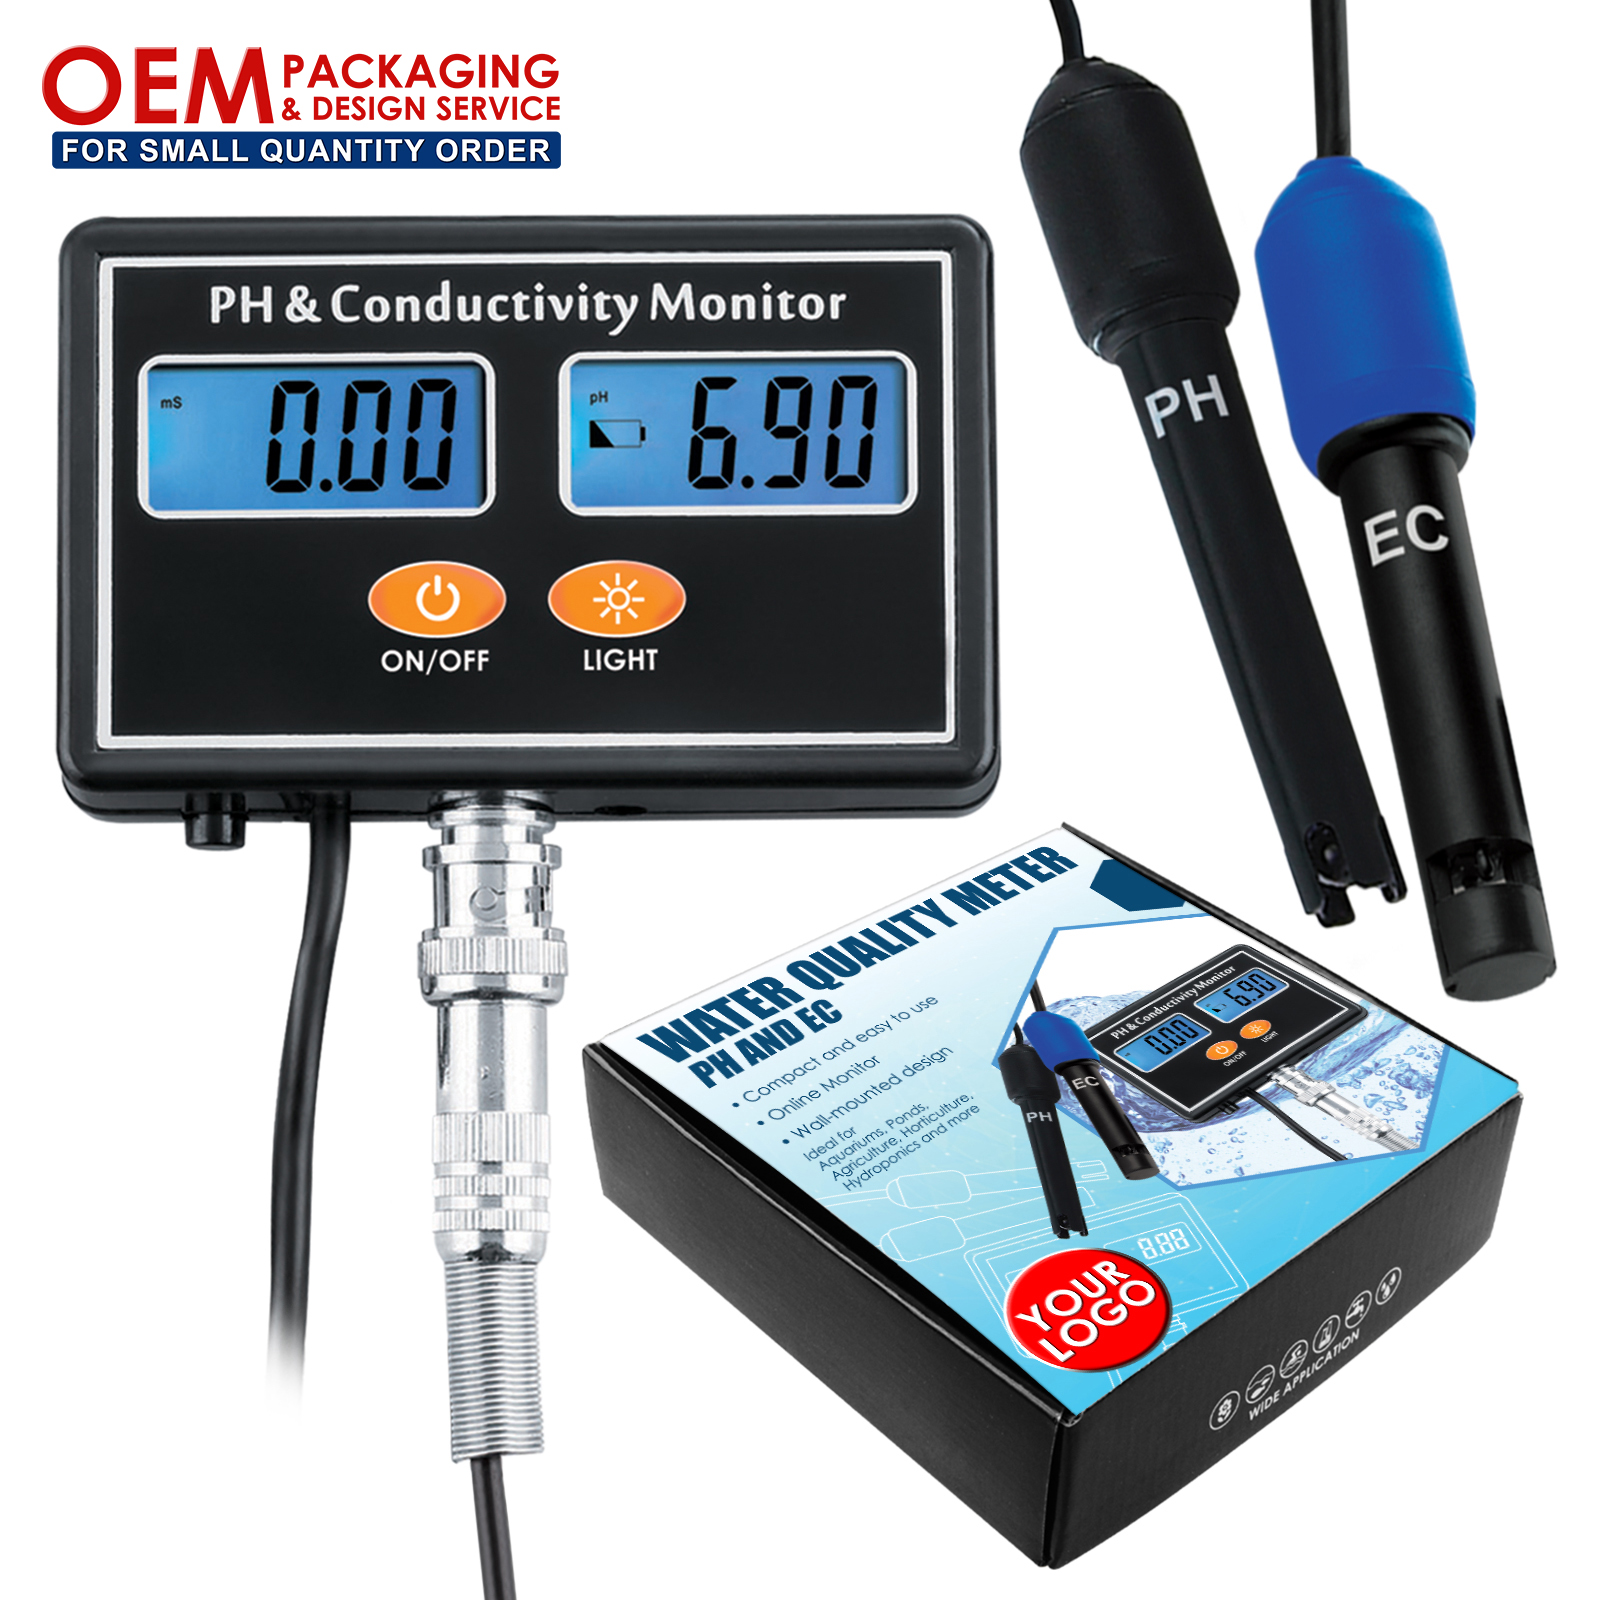 Online PH/EC Conductivity Monitor Meter Tester ATC Water Quality Rechargeable Real-time Monitoring (OEM Packaging Available)